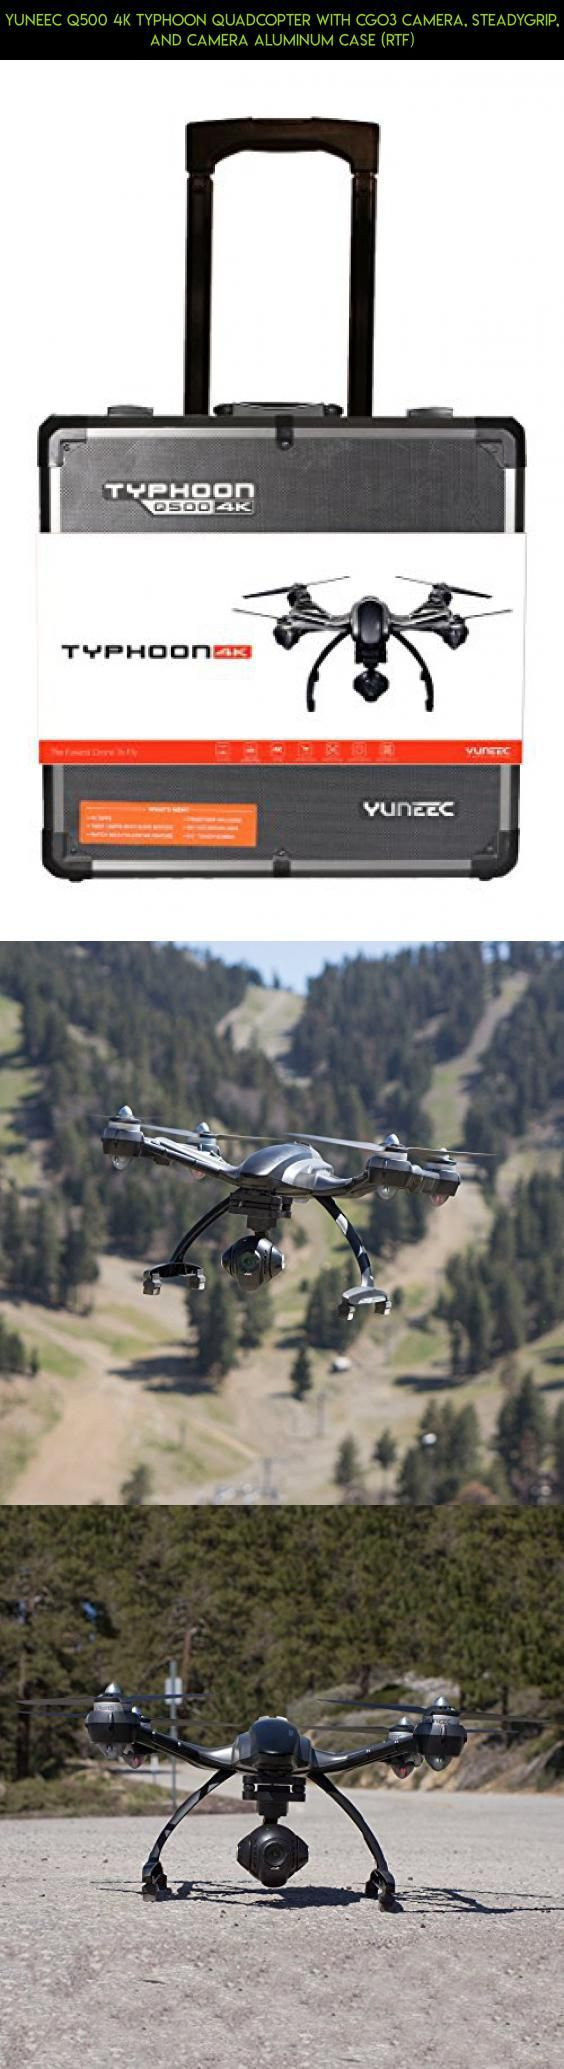 YUNEEC Q500 4K Typhoon Quadcopter with CGO3 Camera, SteadyGrip, and Camera Aluminum Case (RTF) #camera #drone #kit #shopping #parts #fpv #gadgets #remote #products #plans #racing #yuneec #control #technology #tech